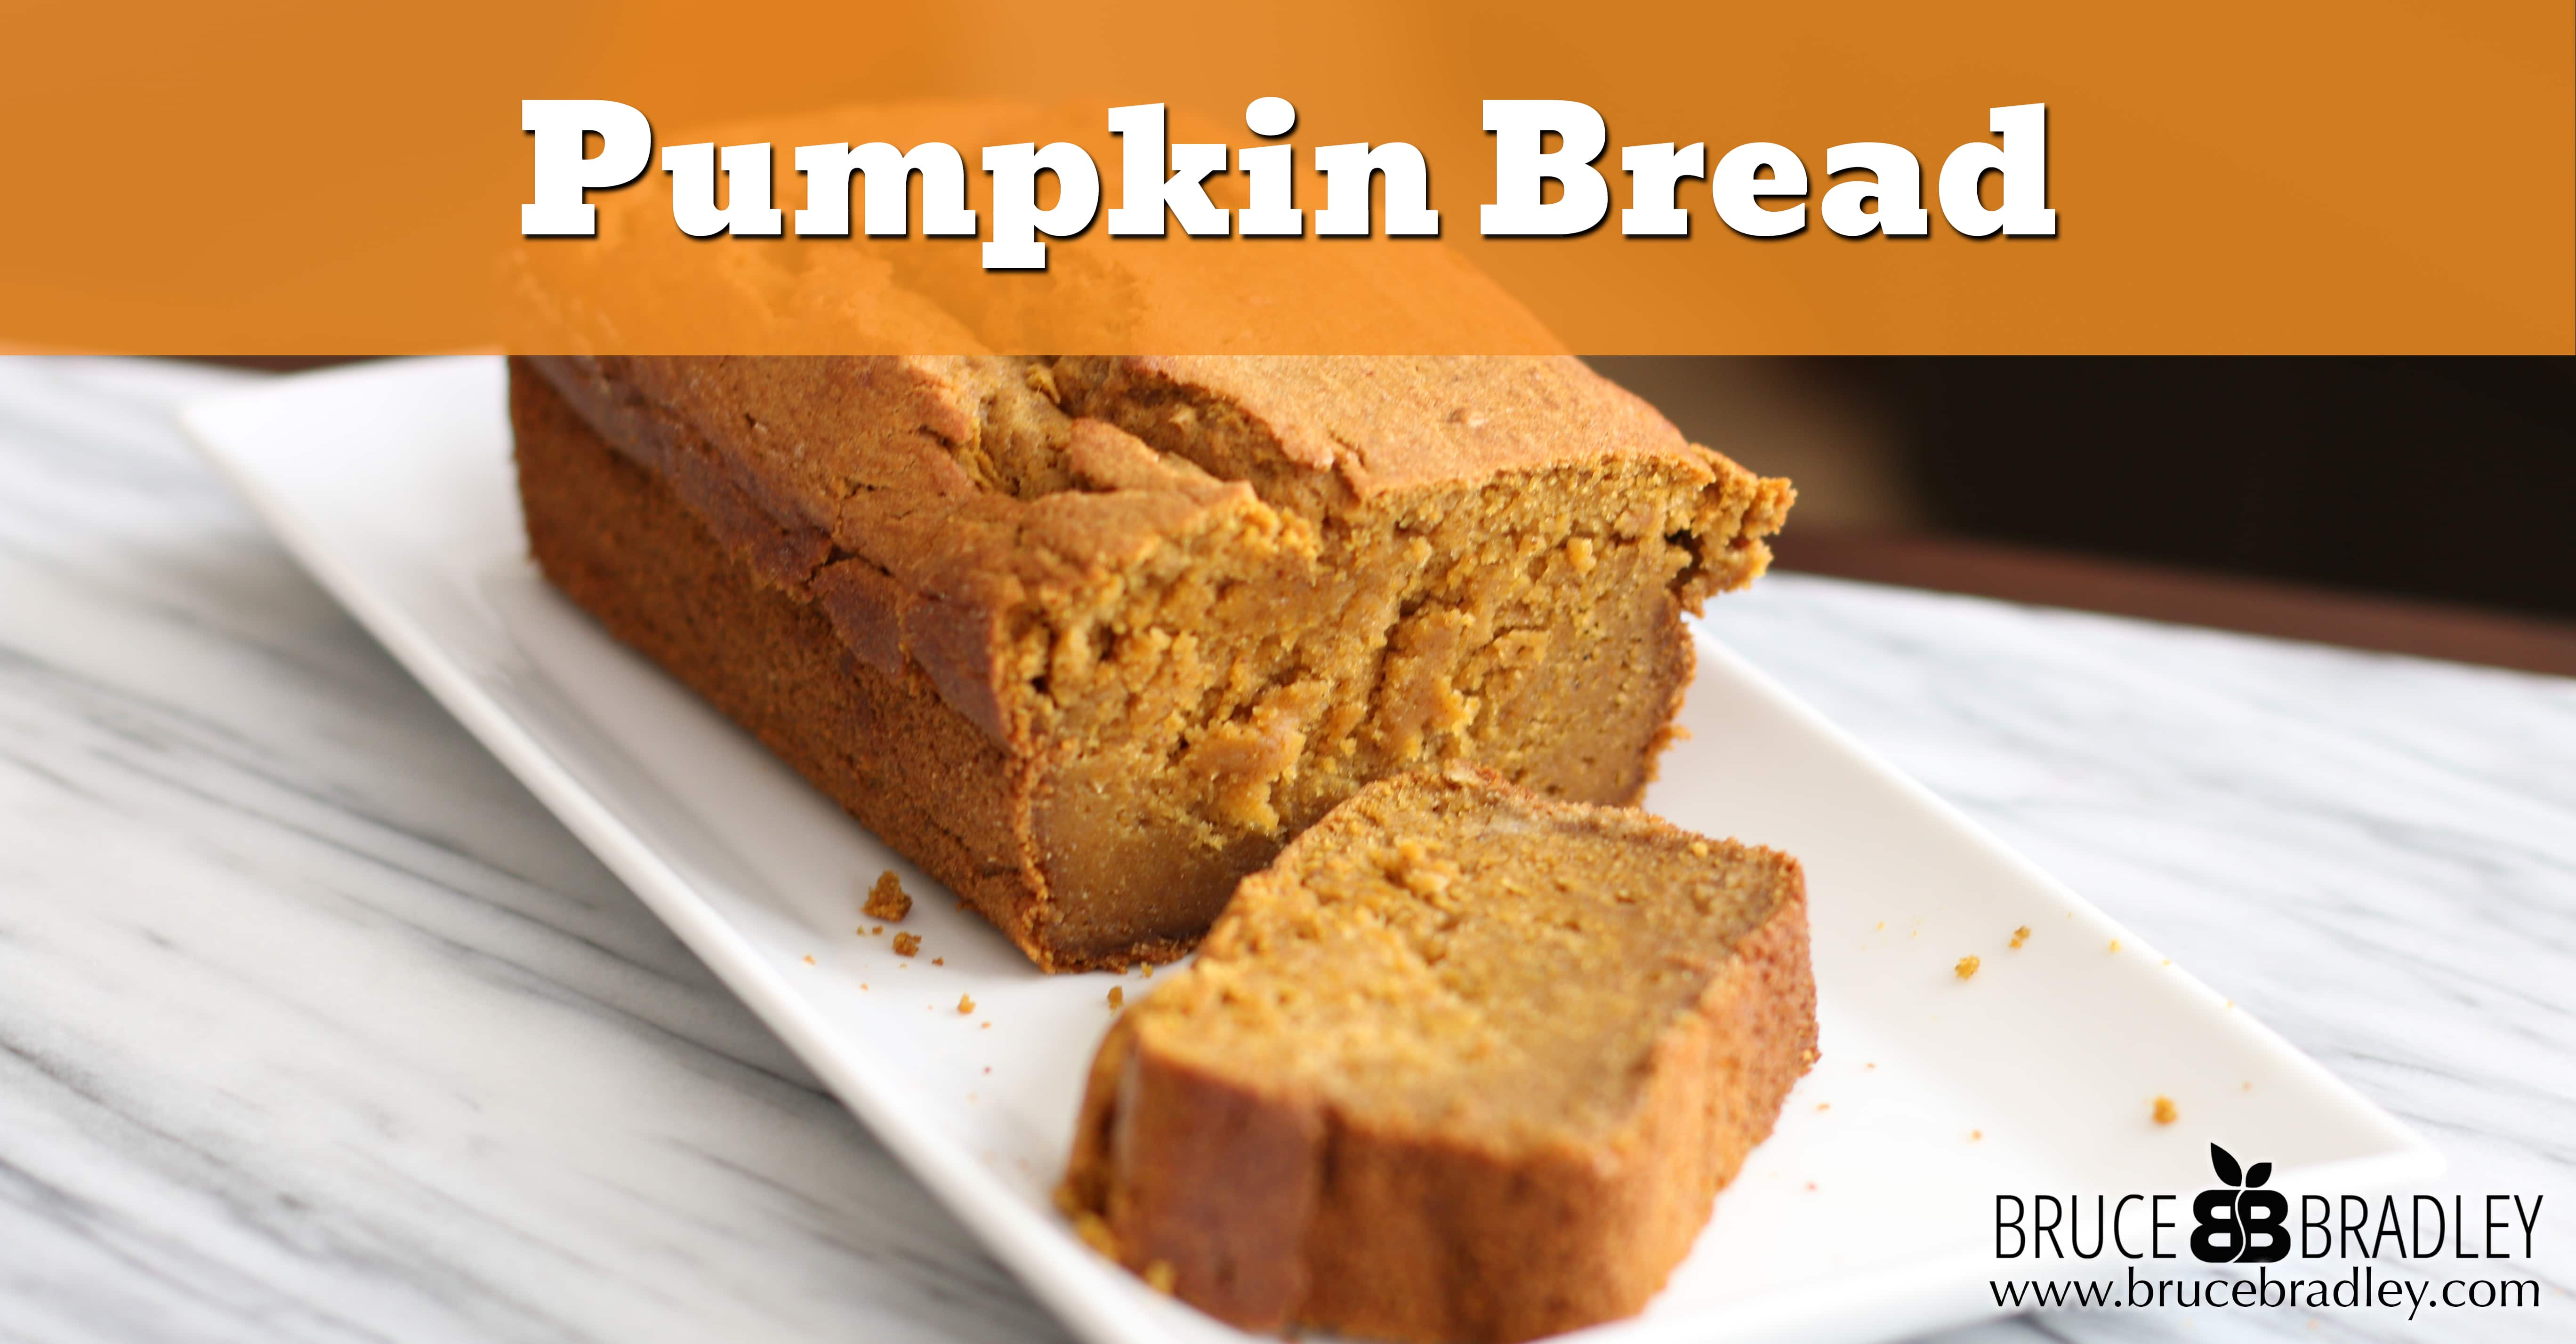 Finally, a delicious pumpkin bread that's not overflowing with sugar AND is made with real ingredients like whole wheat pastry flour, maple syrup, and of course, pumpkin!